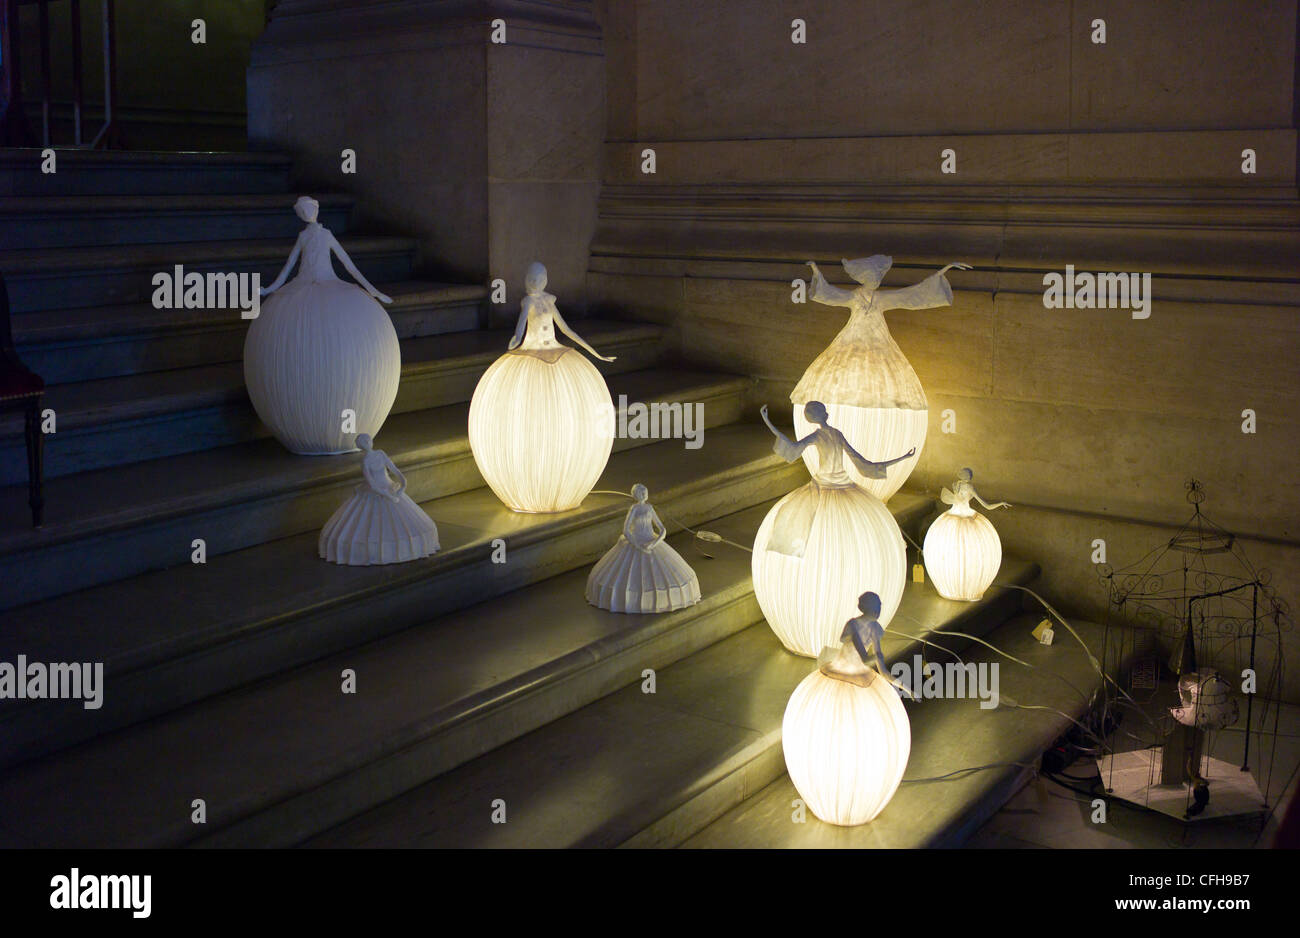 France, Paris, Opéra Palais Garnier, lamps on the steps of the staircase - Stock Image